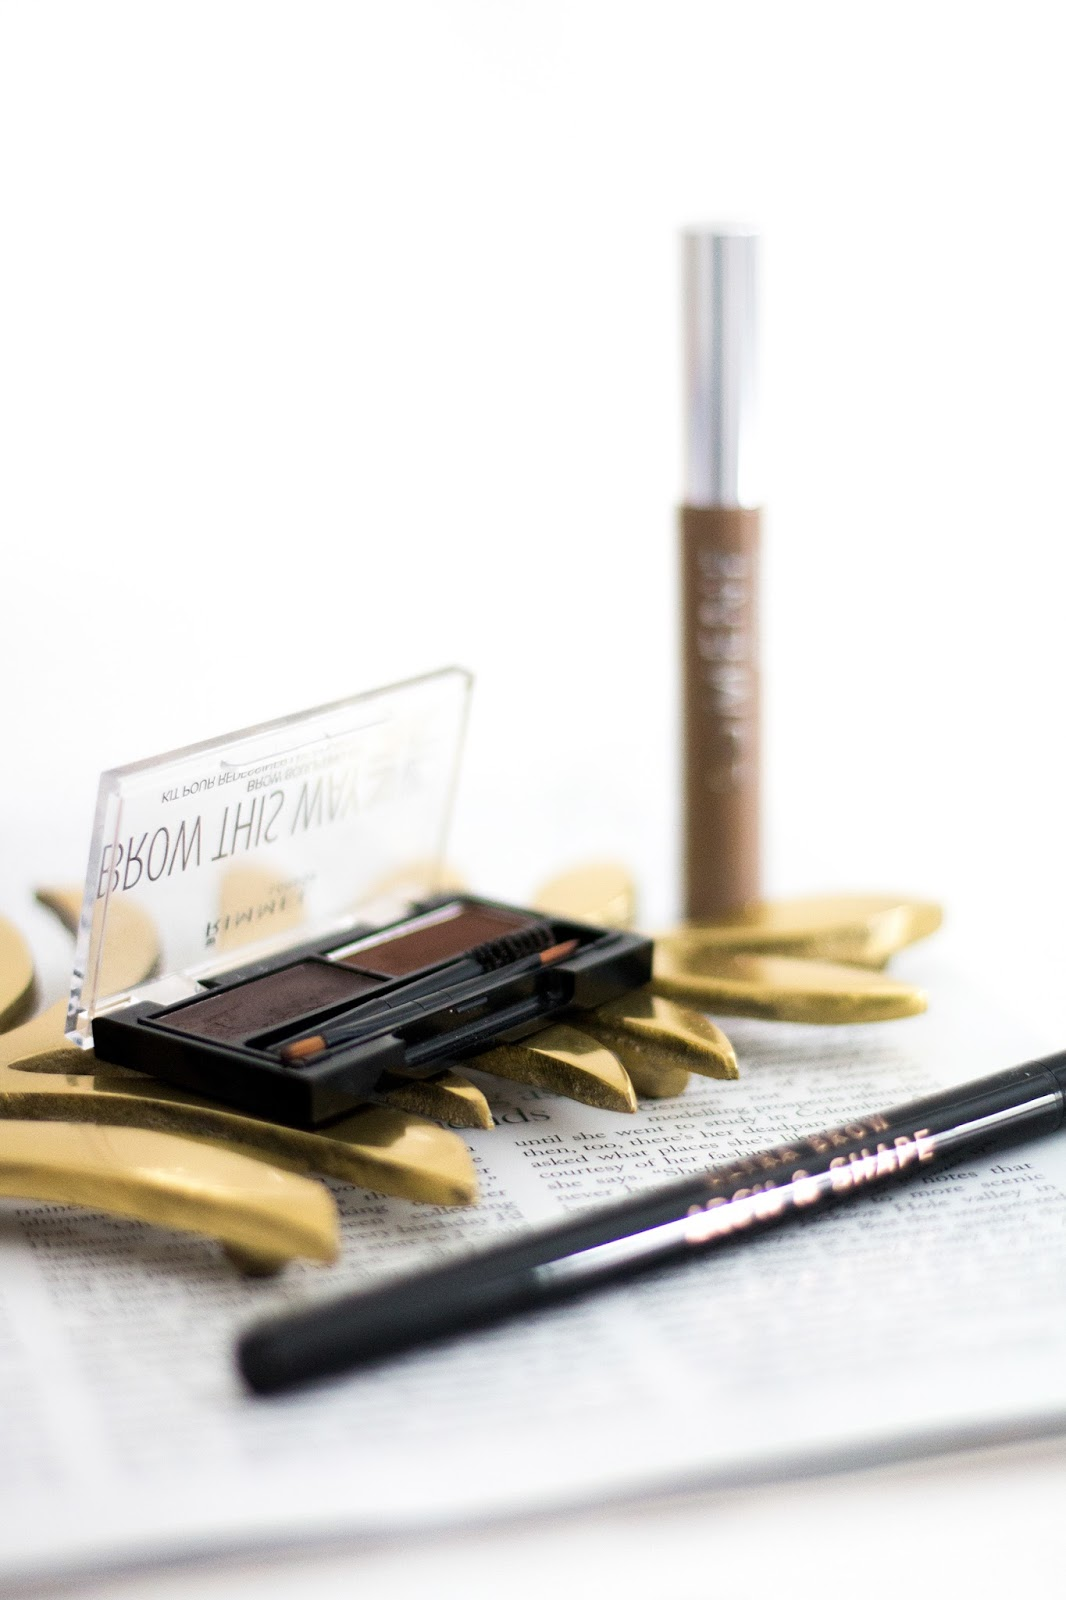 Three affordable eyebrow products | eyebrow products